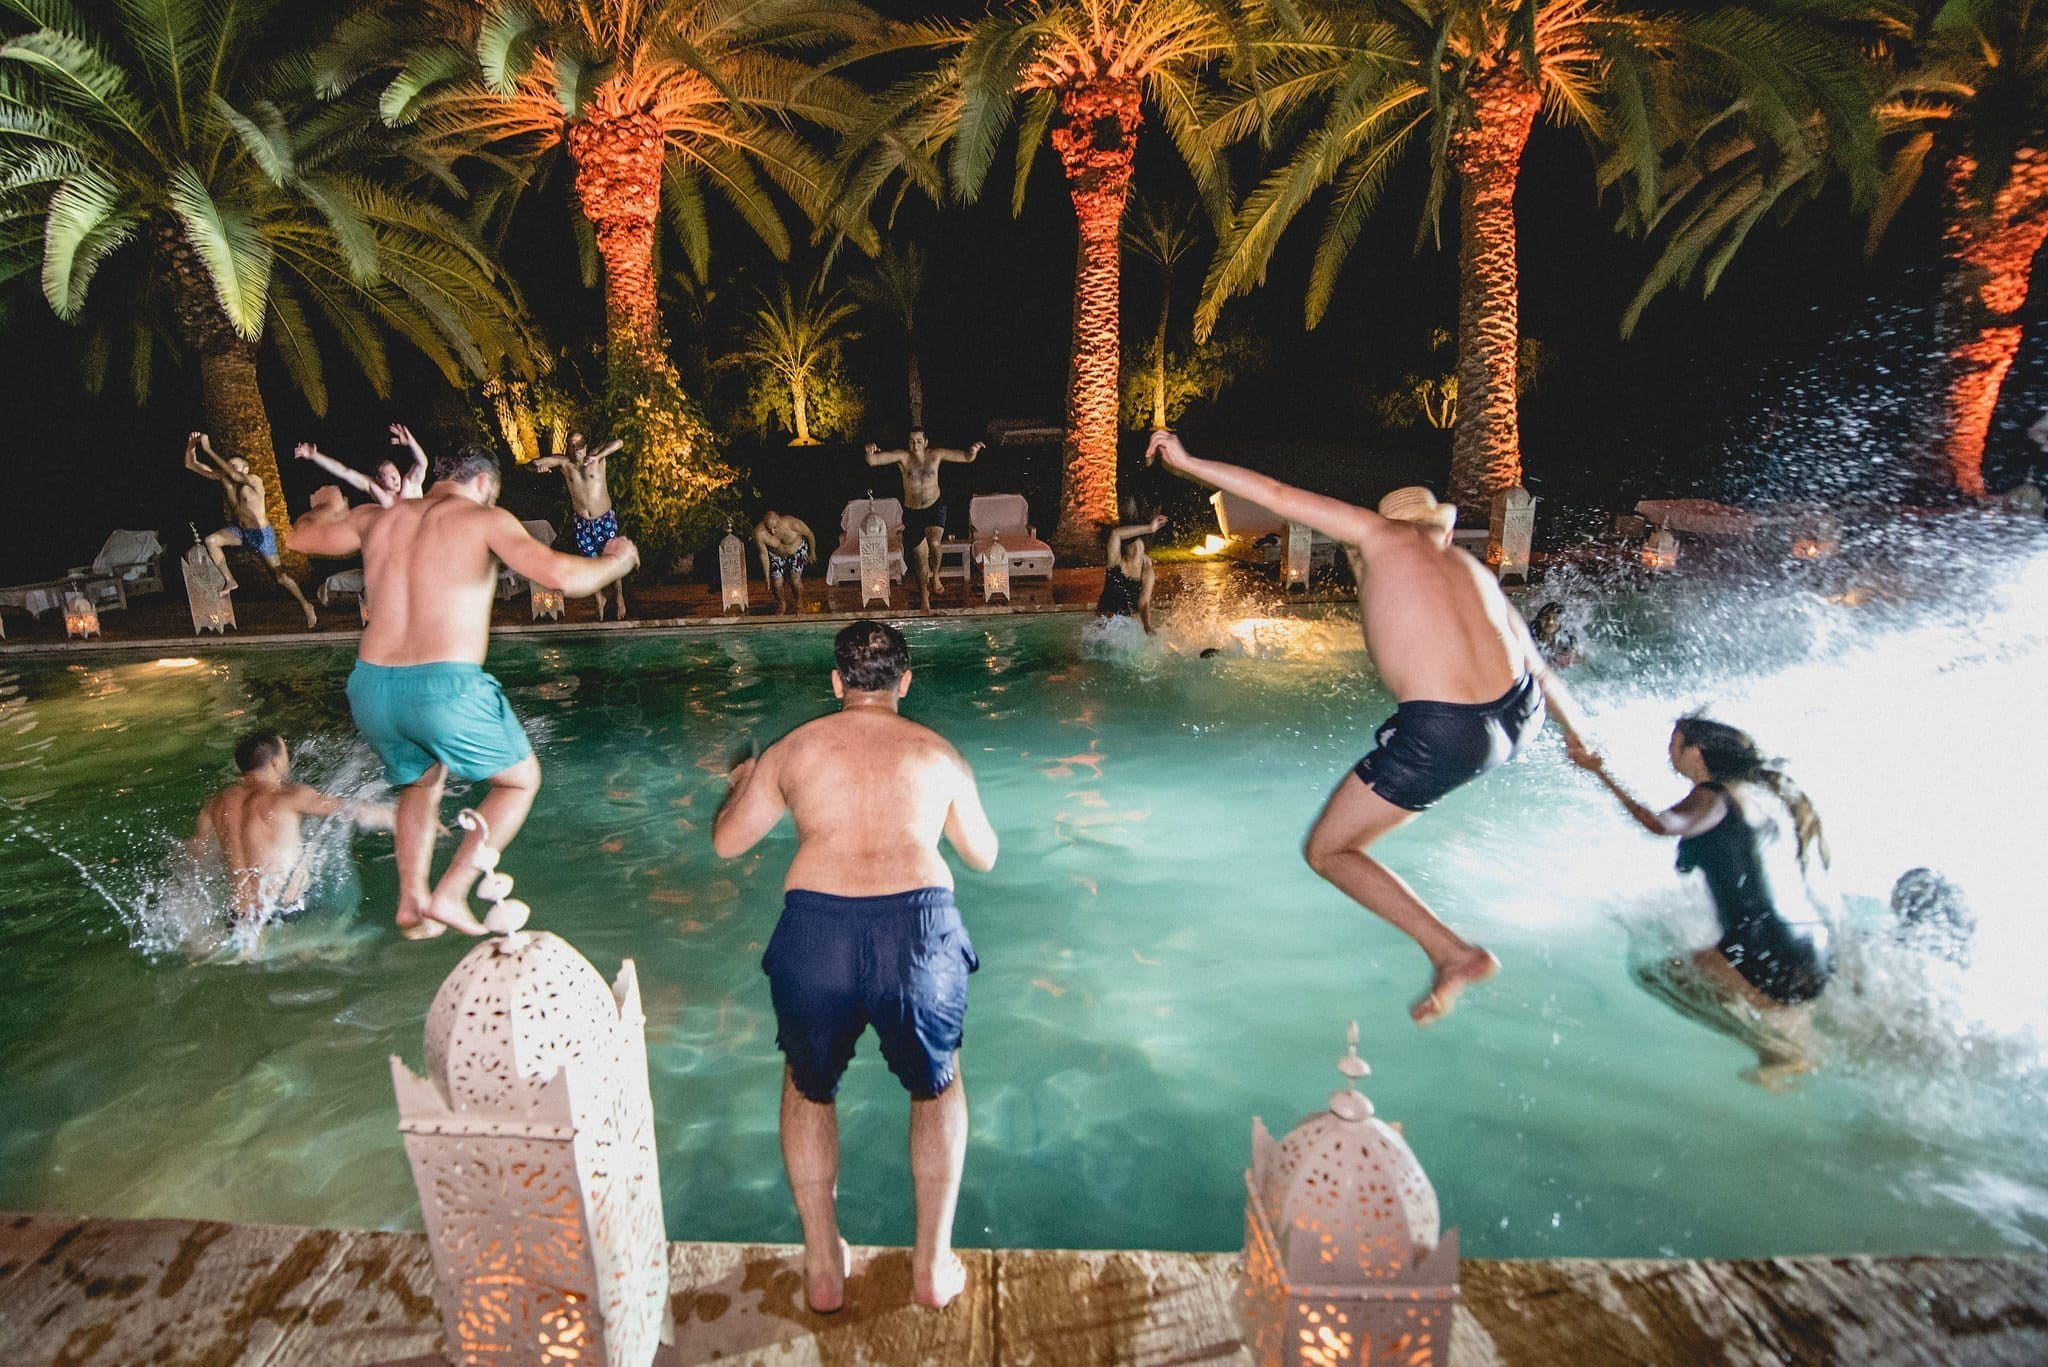 A group of guests jump into the pool